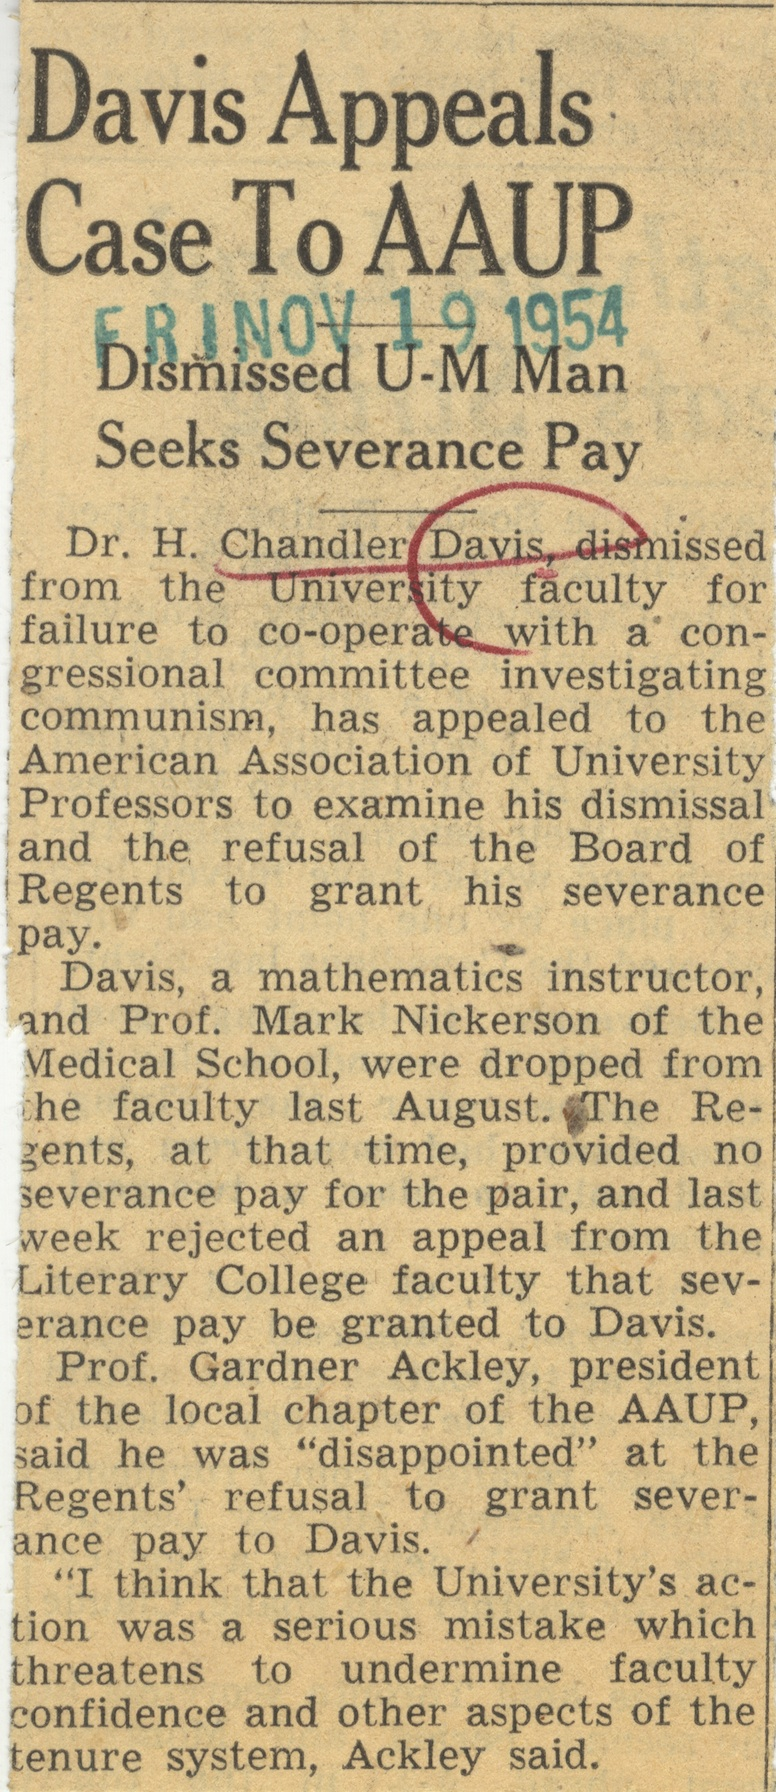 Davis Appeals Case To AAUP image